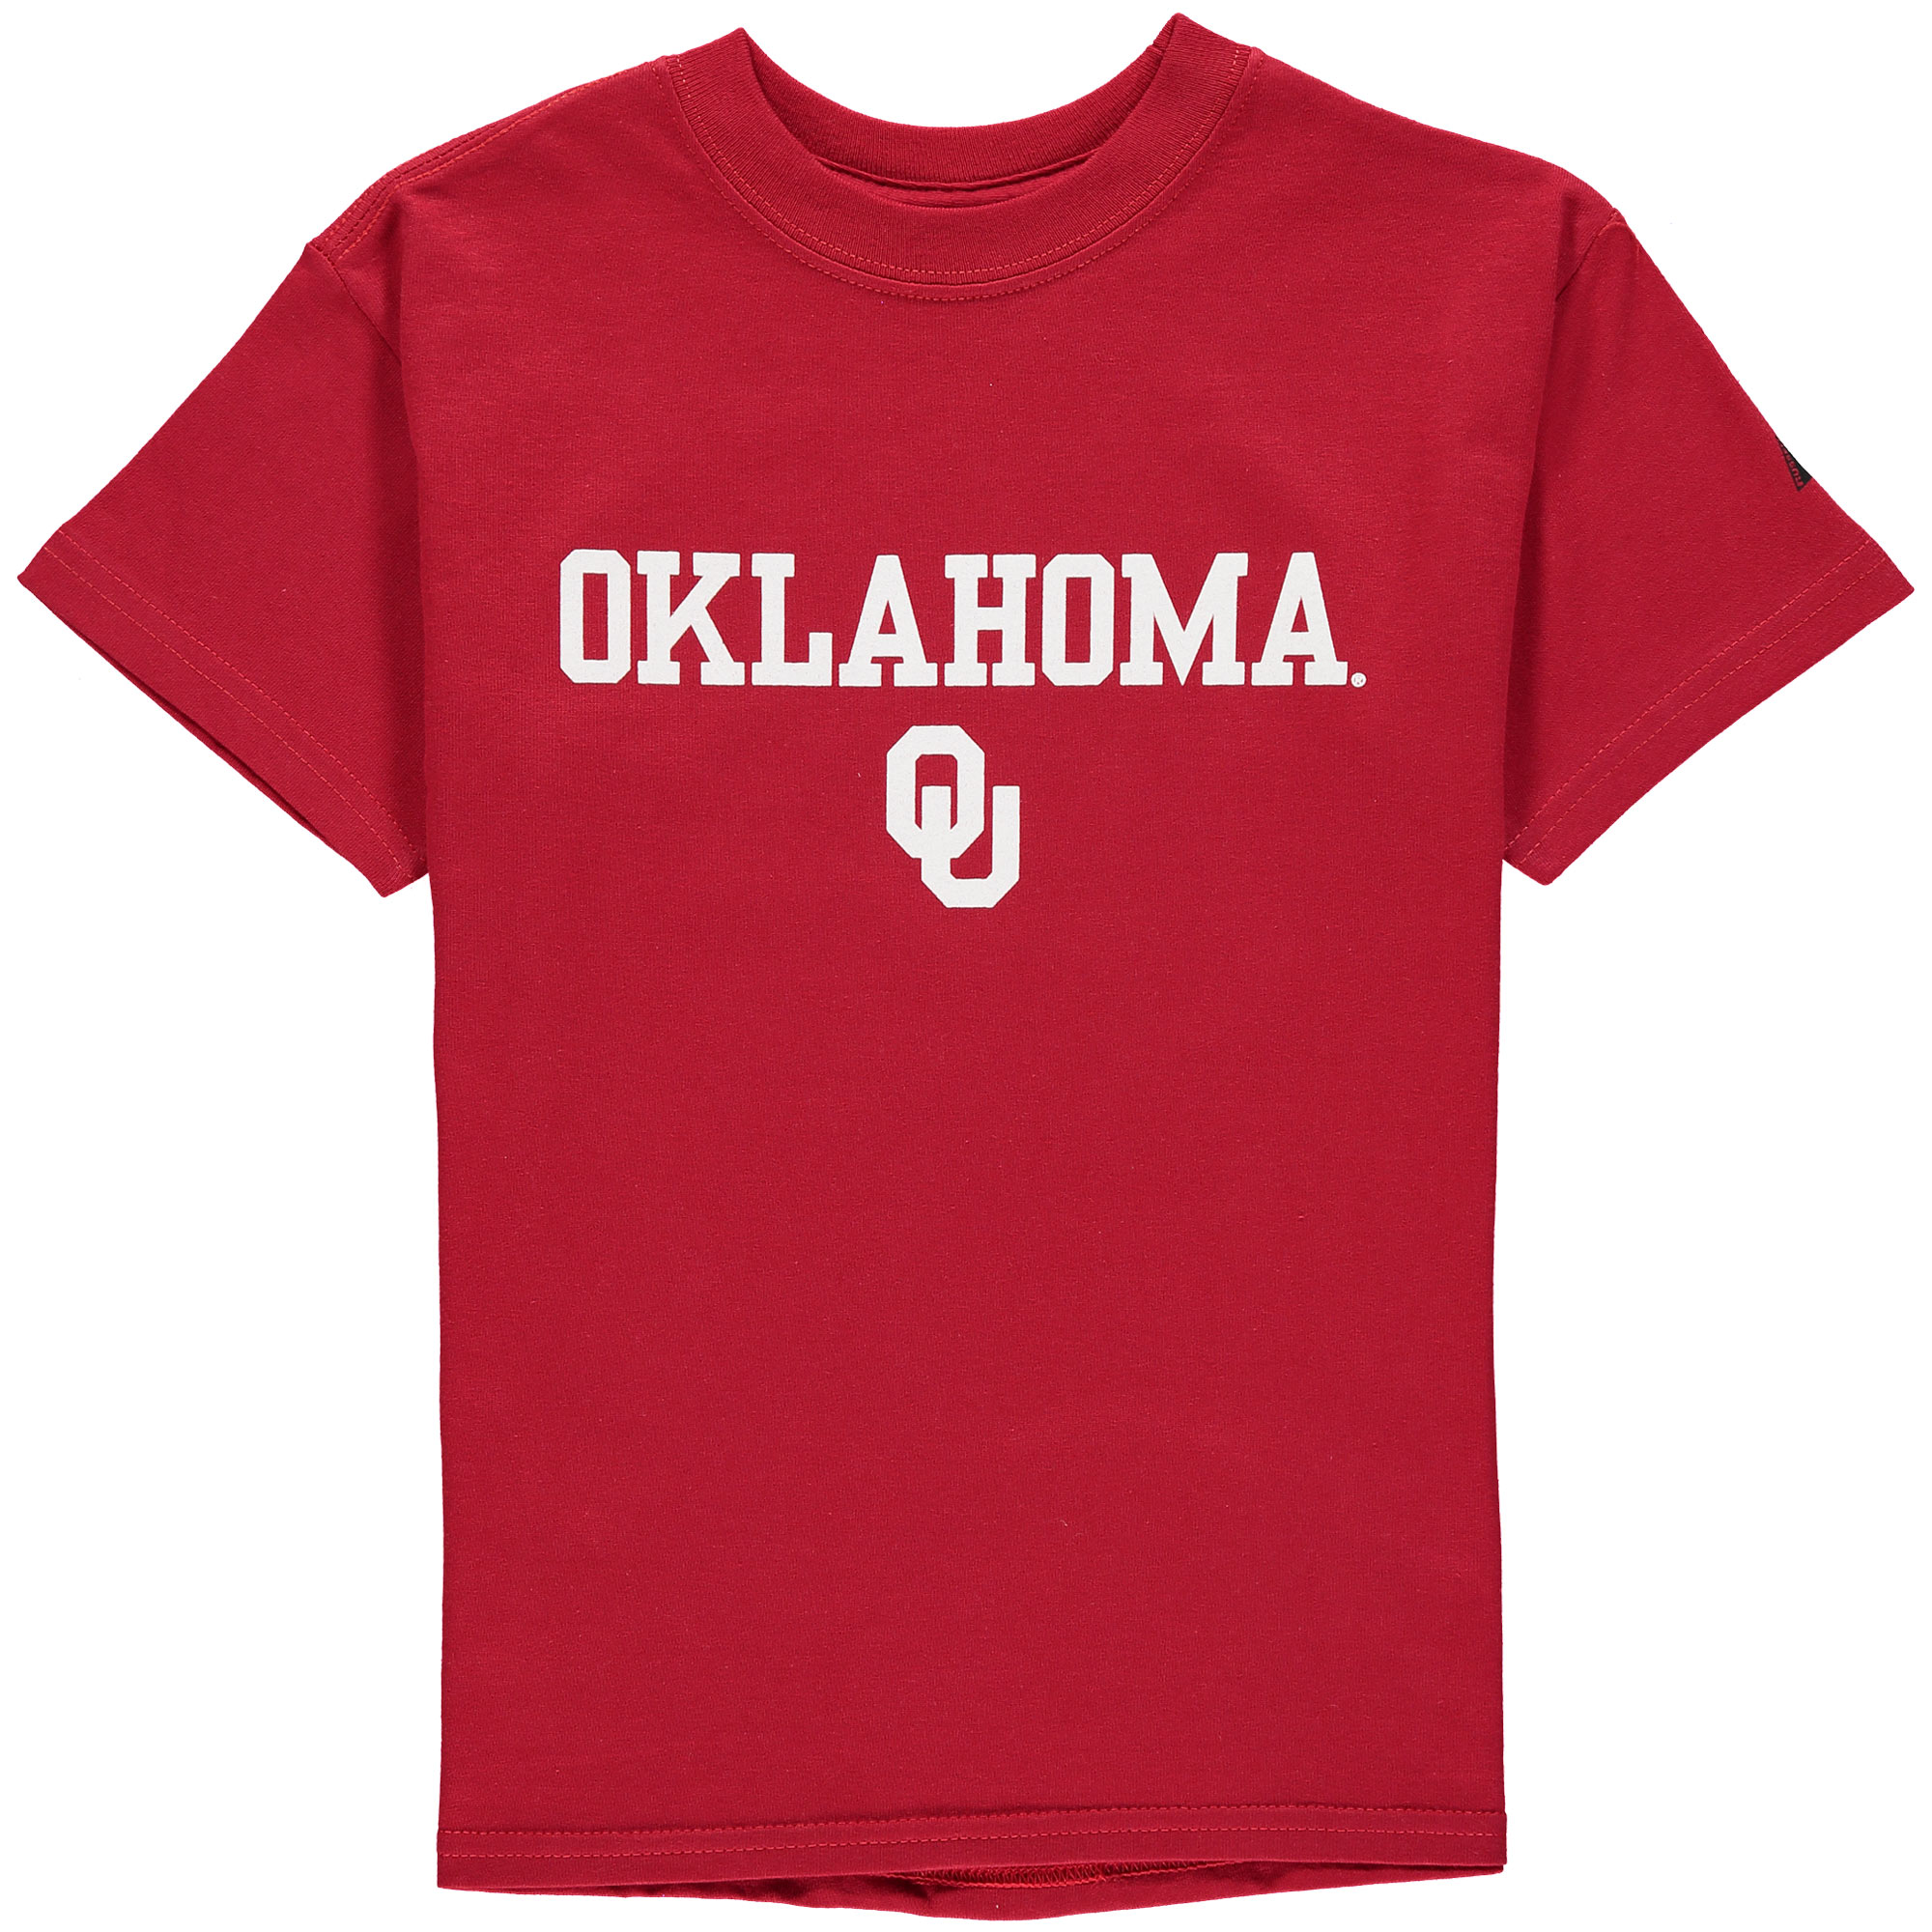 Youth Russell Crimson Oklahoma Sooners Team 1 Crew Neck T-Shirt